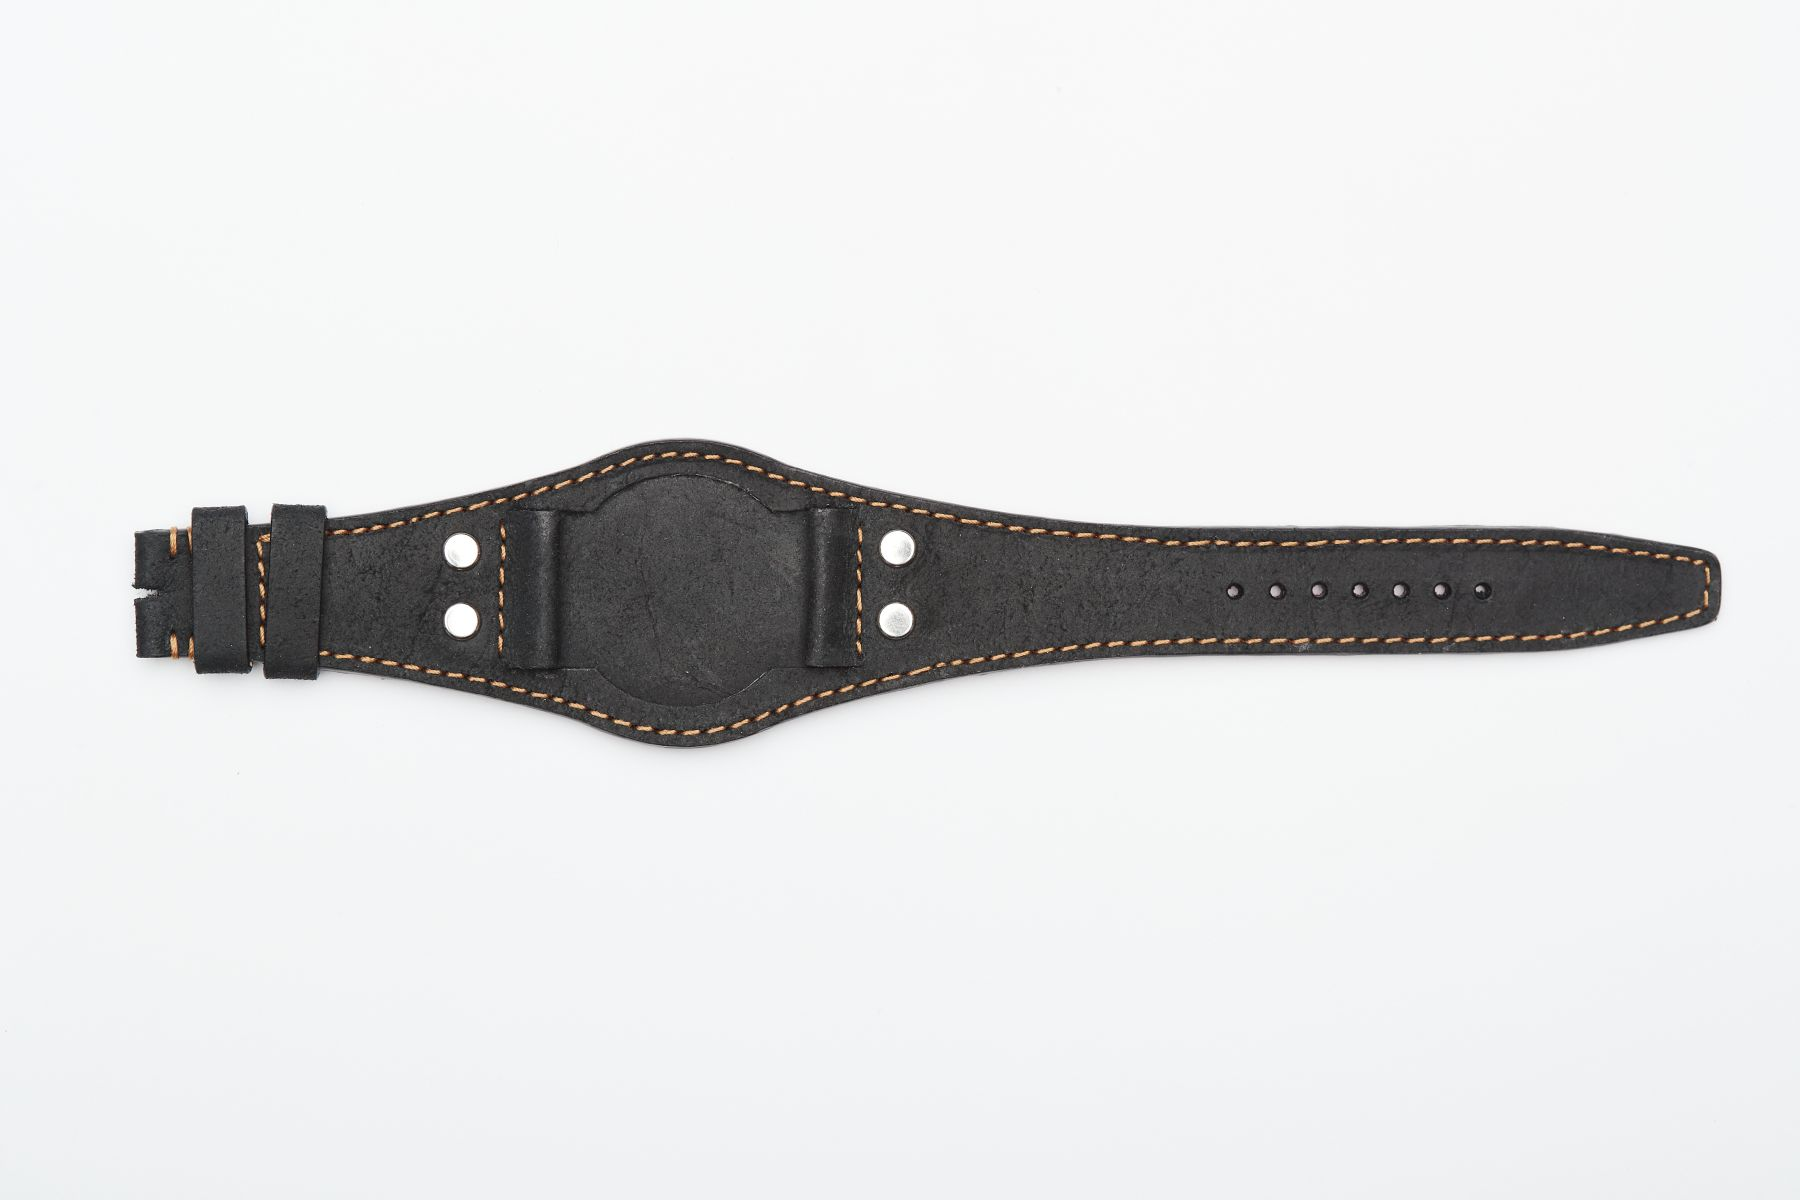 Tudor Heritage Ranger Special style Bund watch strap 22mm lugs in Anthracite	Black Vintage Mohawk leather